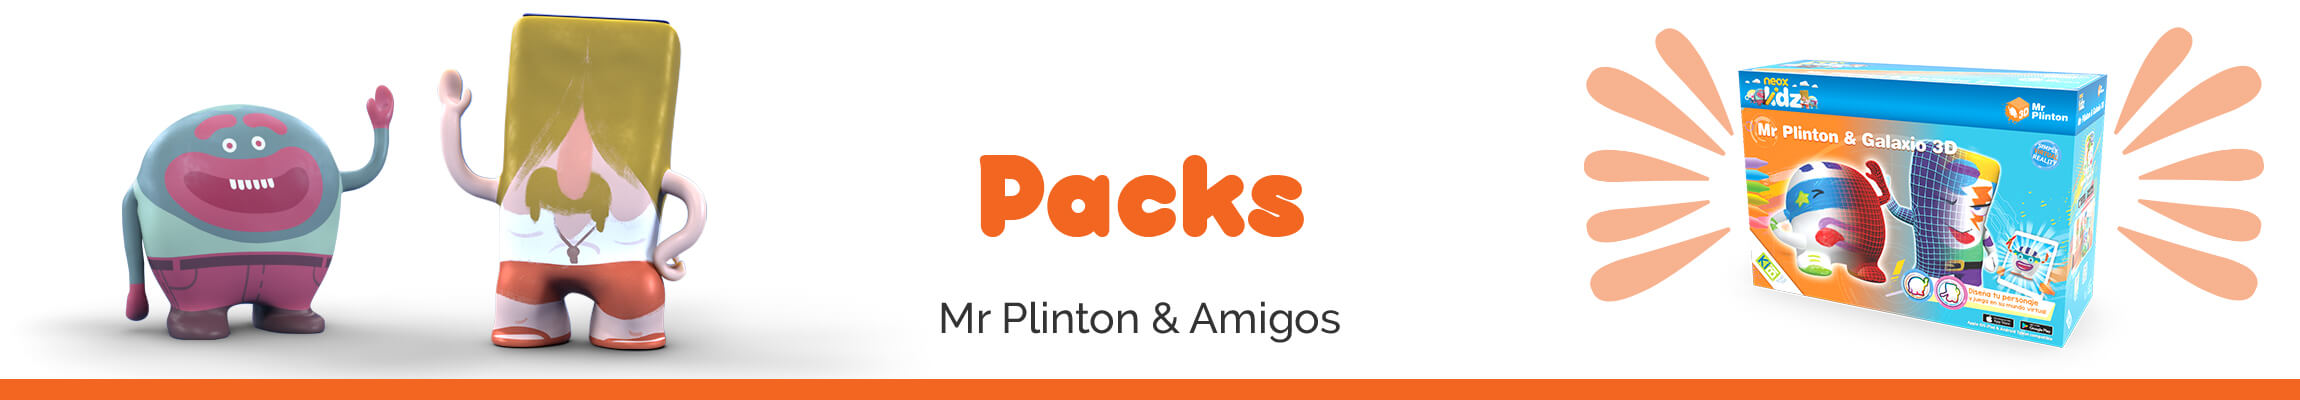 Packs Mr Plinton